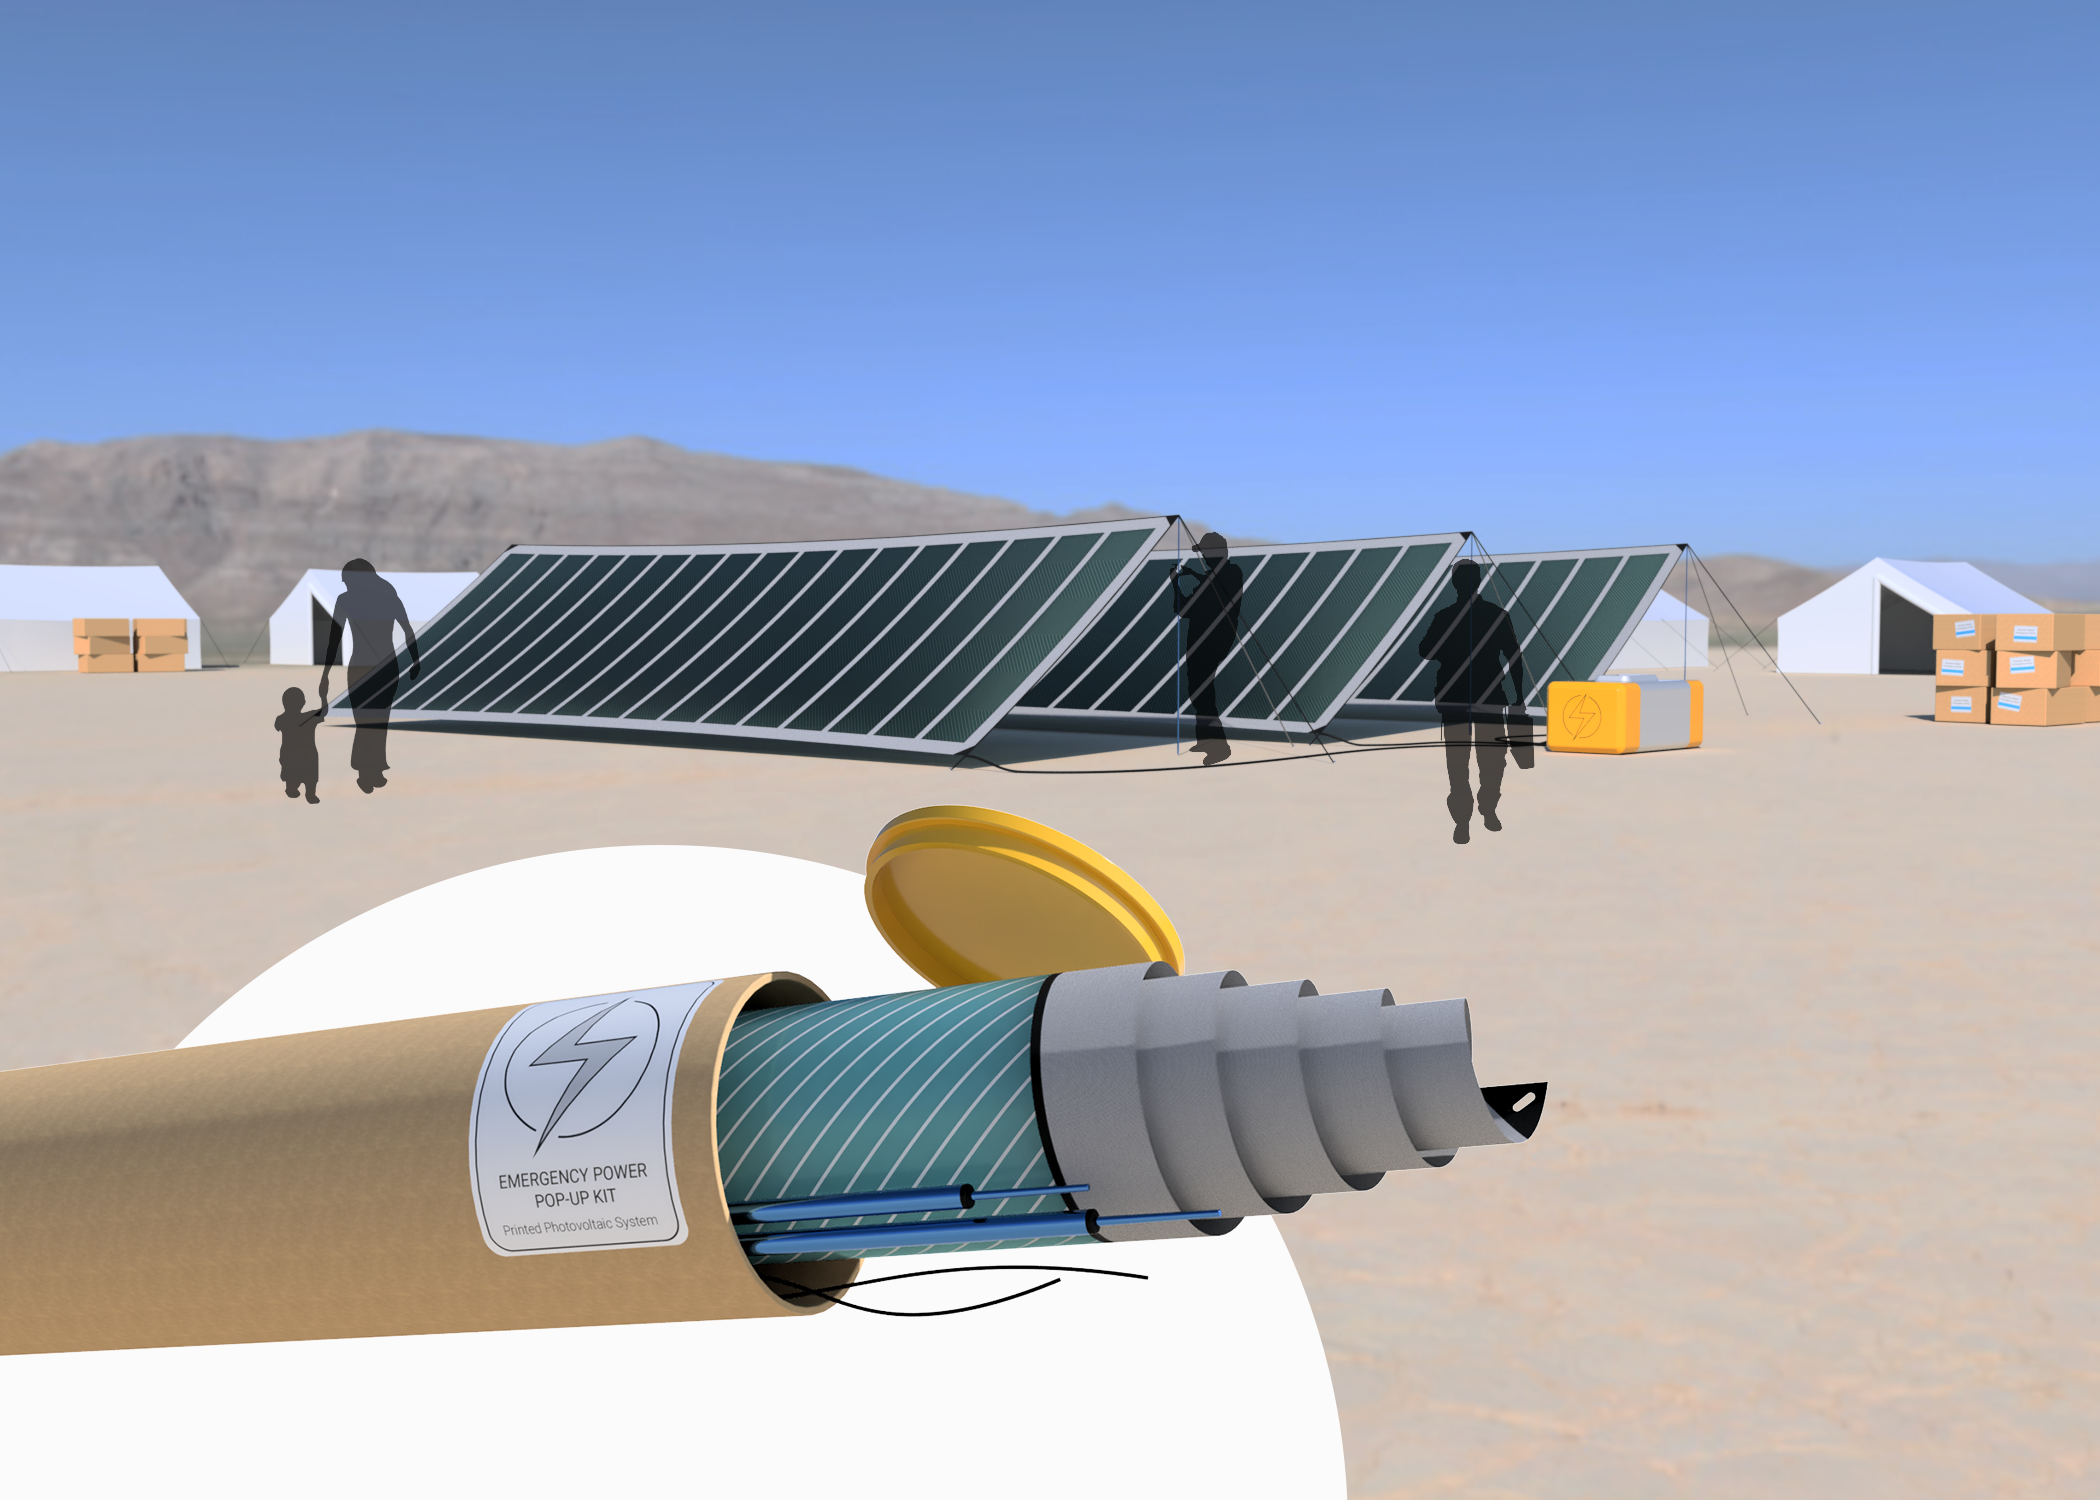 render of a remote sandy area with tents made from flexible solar panels